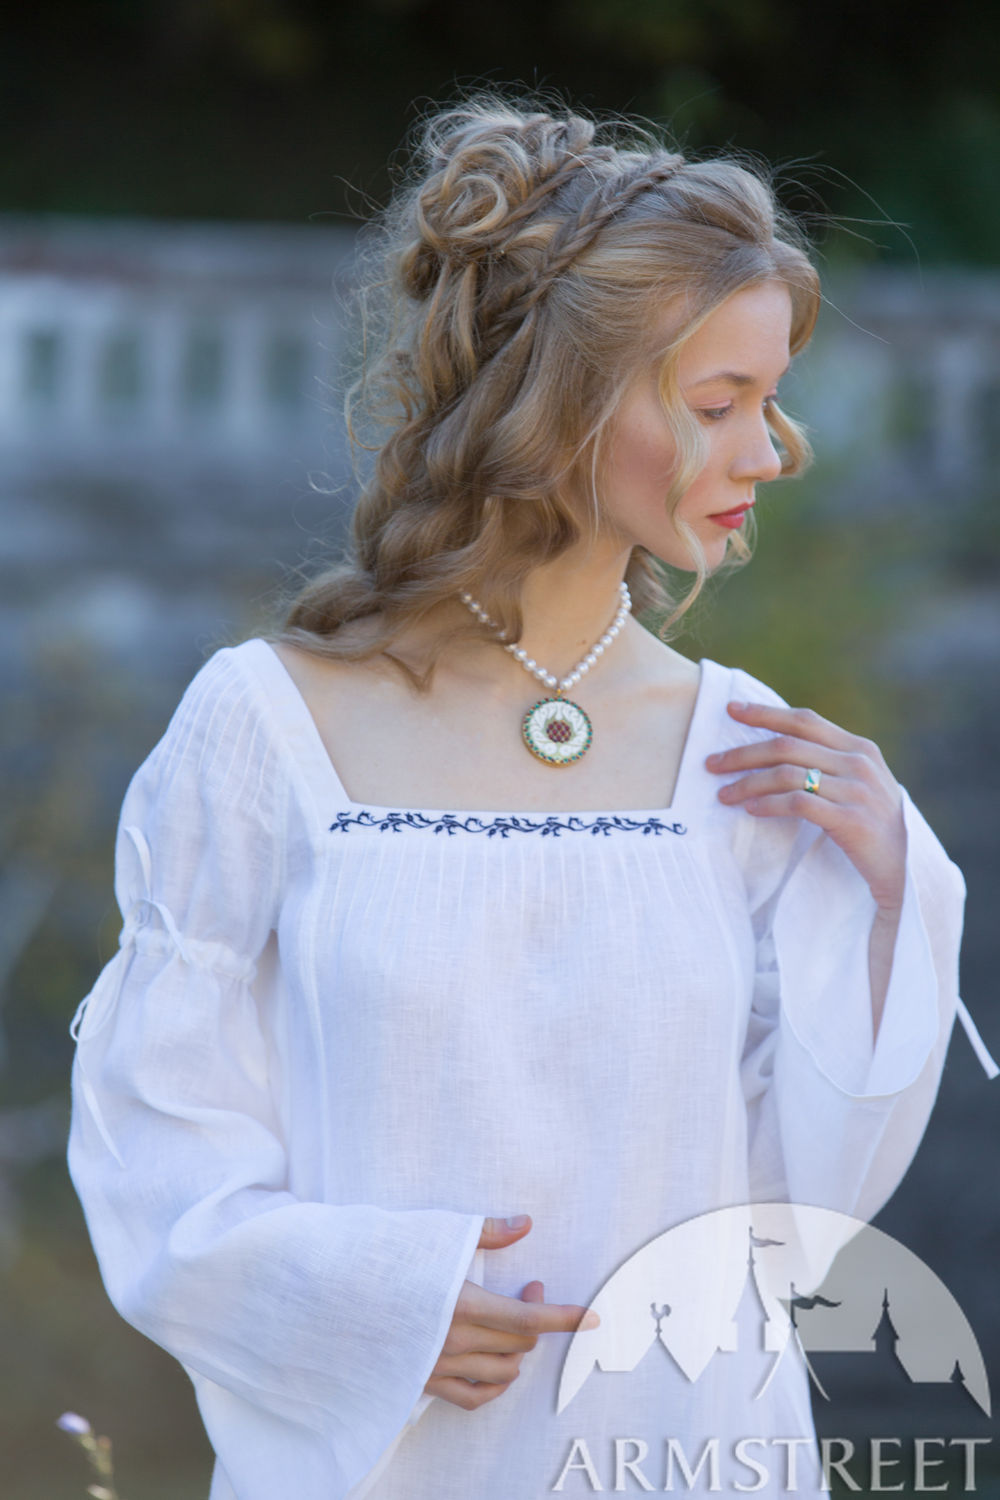 Linen chemise with bell sleeves and hand embroidery